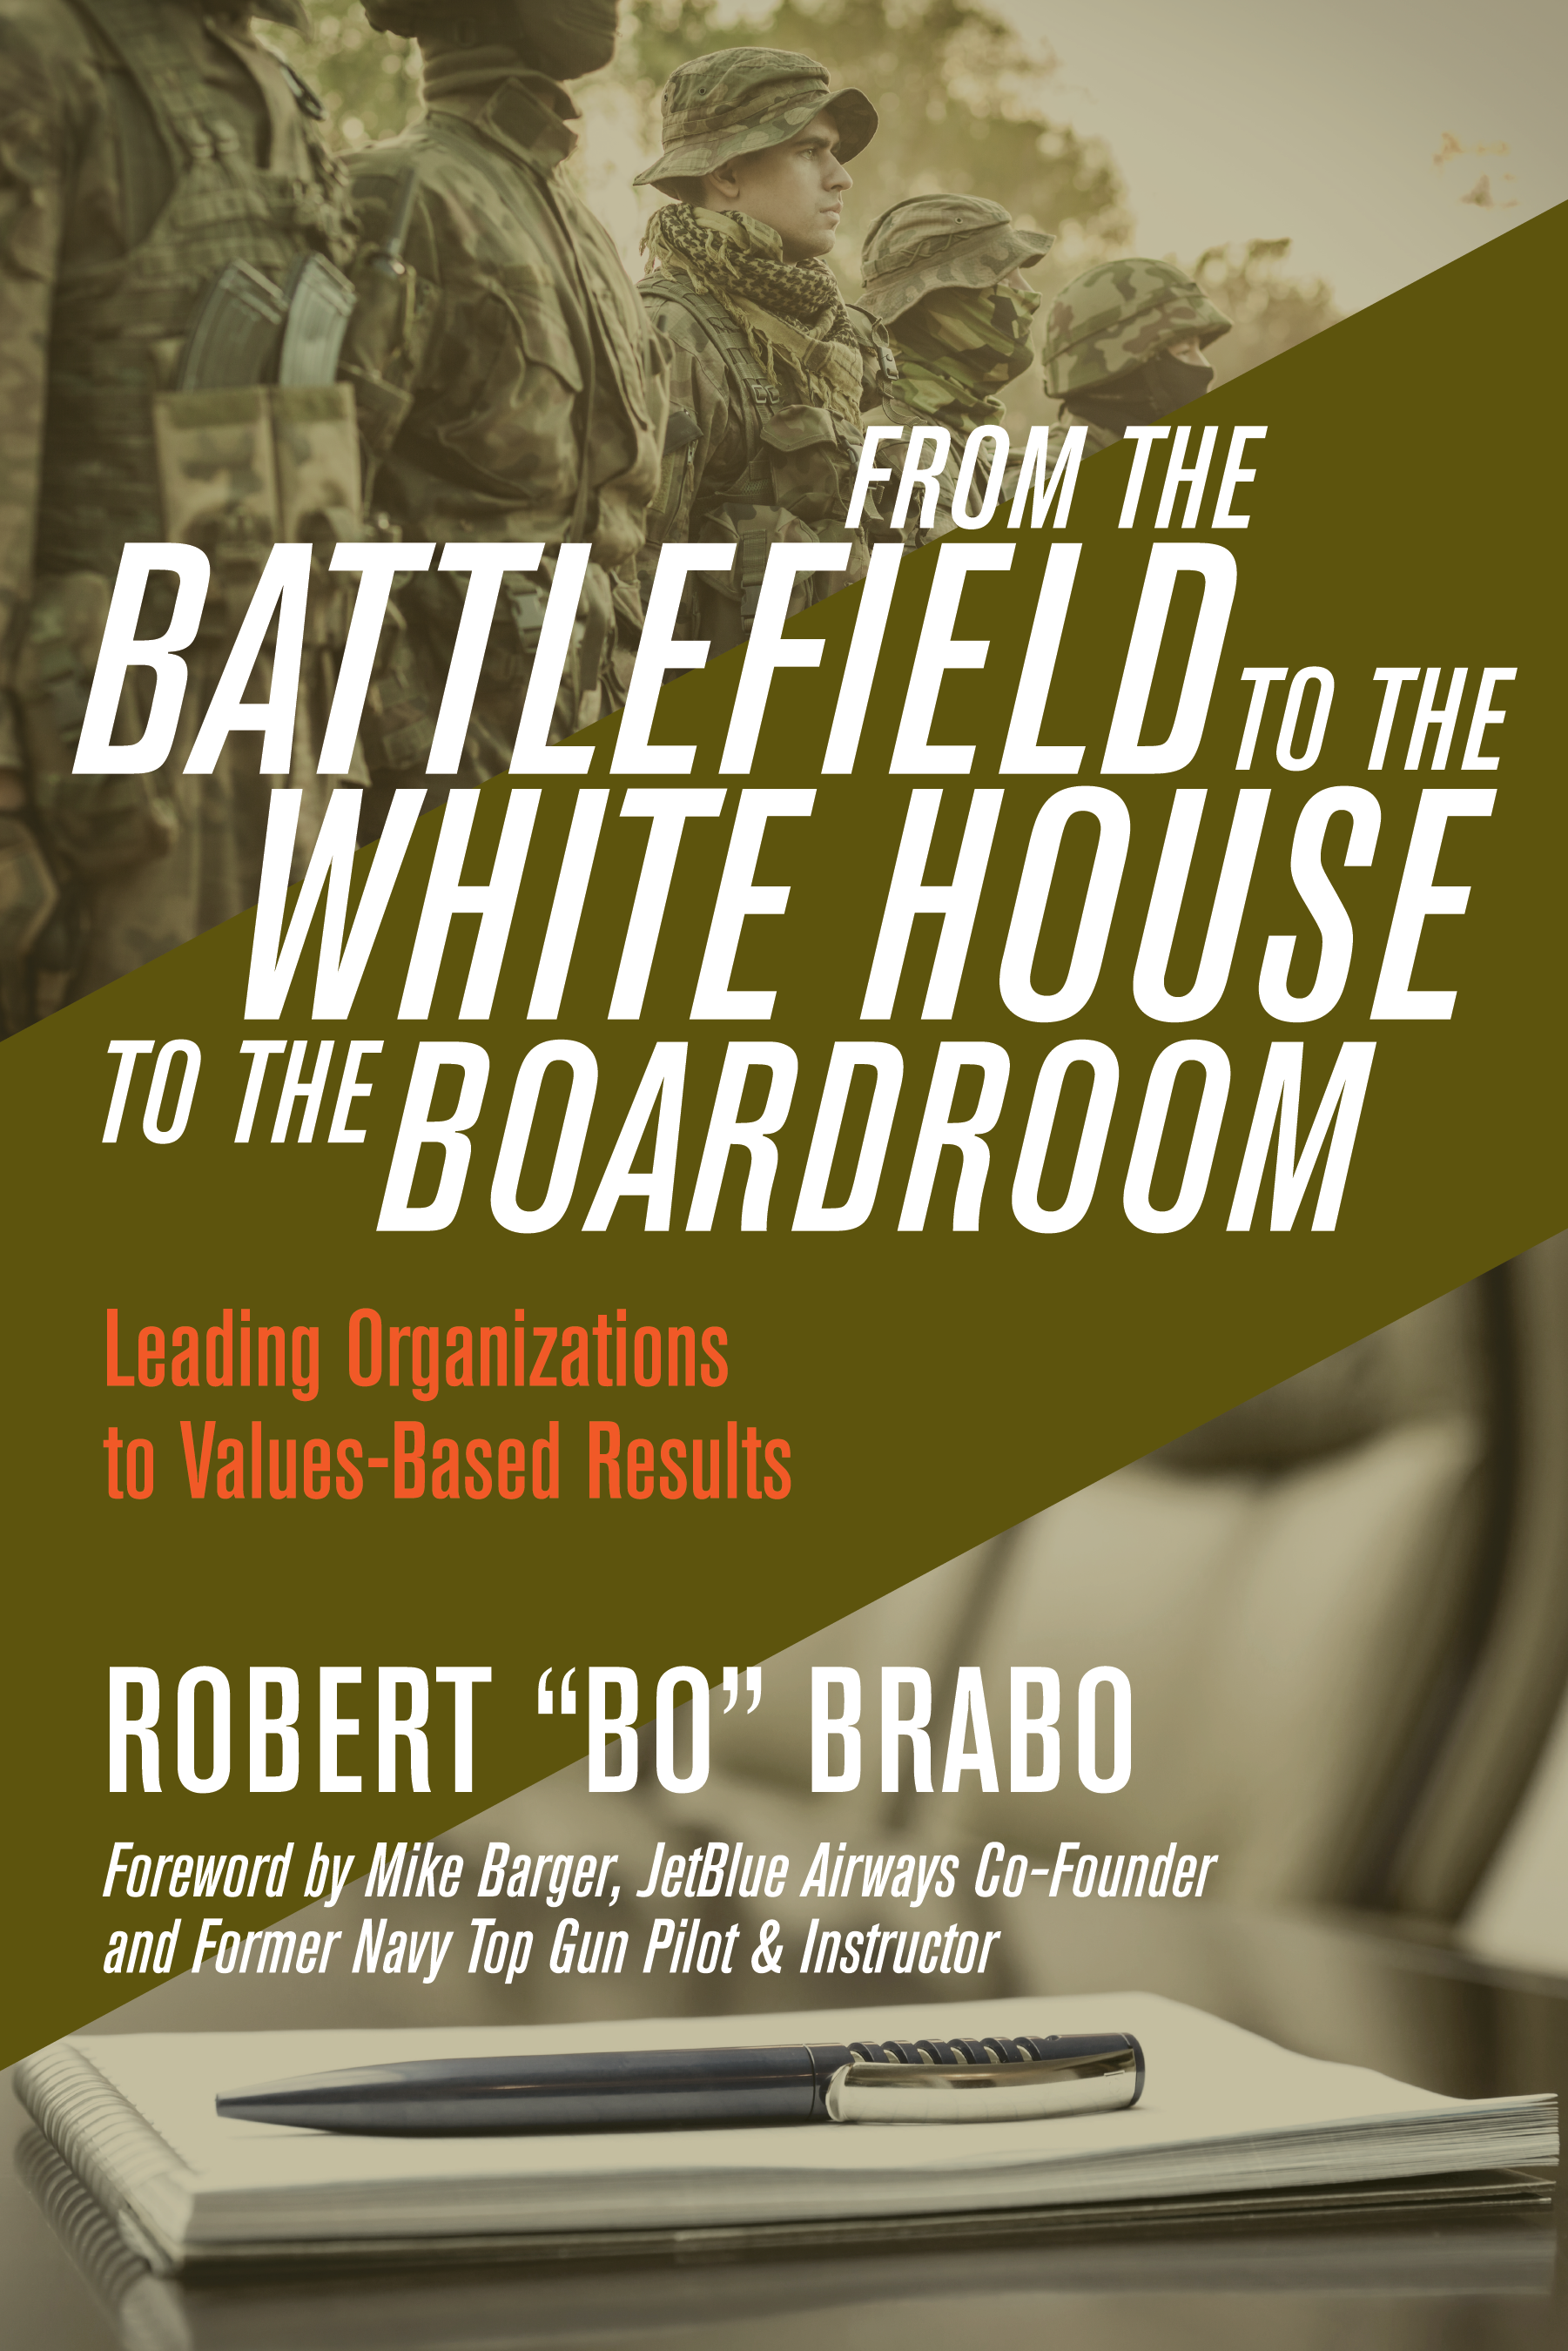 From the Battlefield to the White House to the Boardroom: Leading Organizations to Values-Based Results